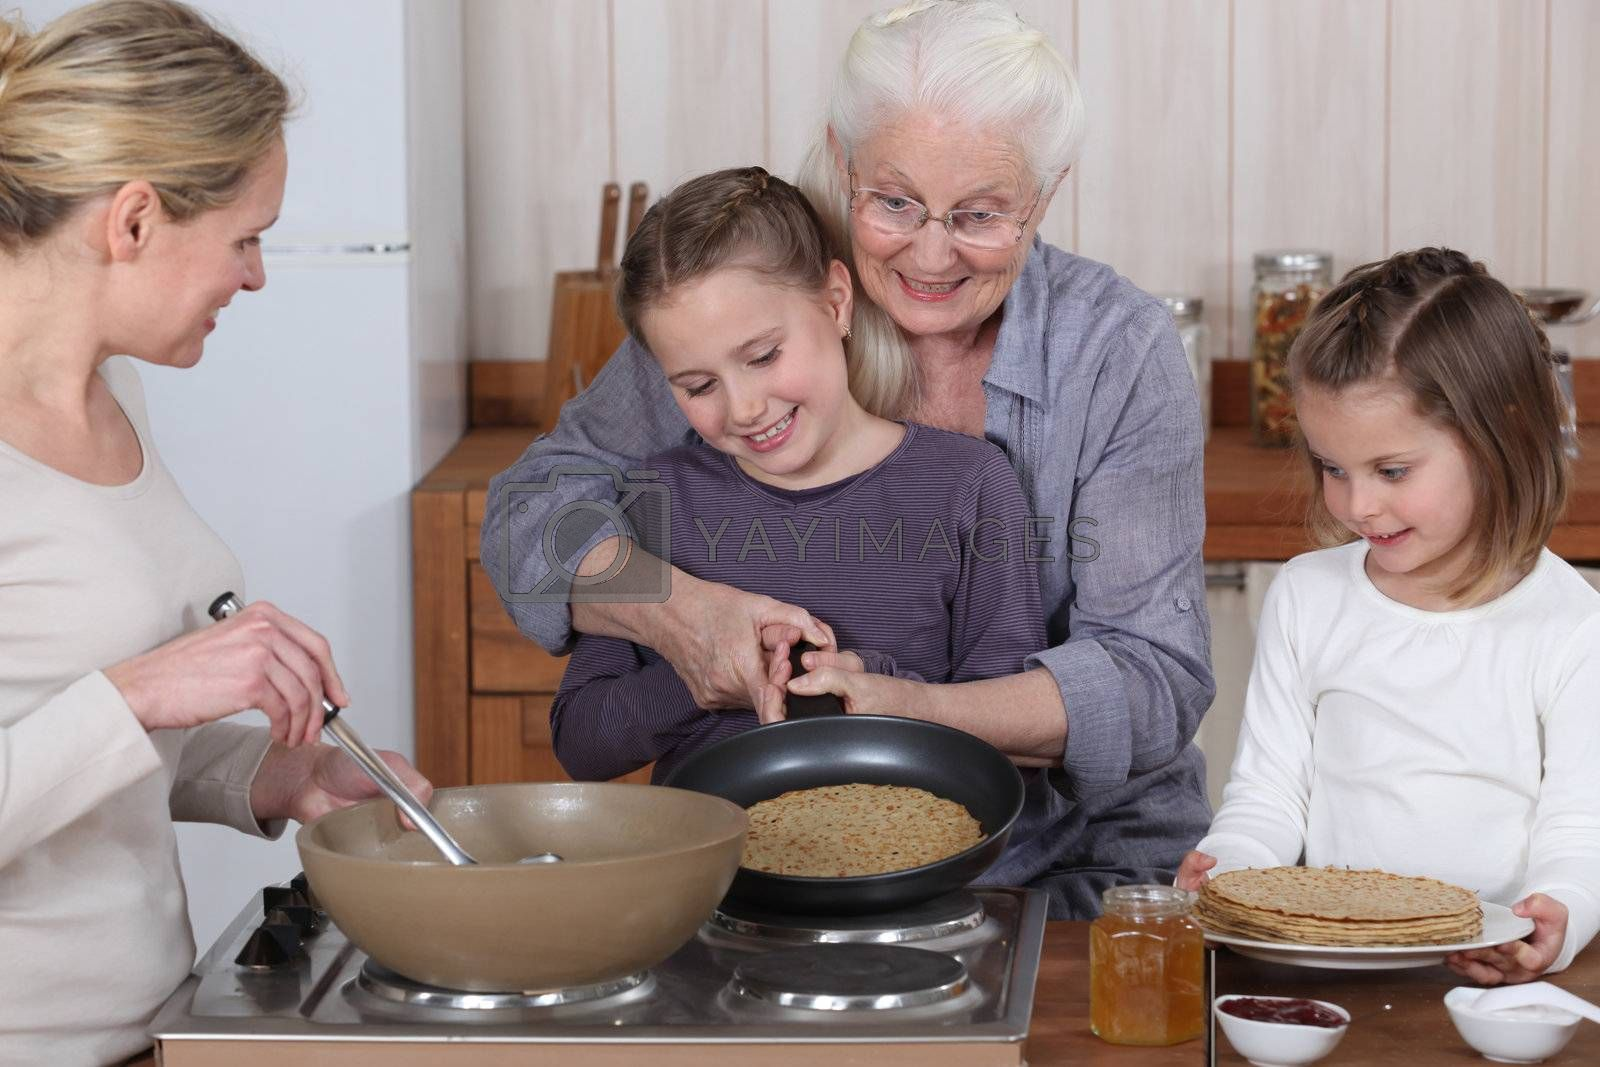 Family cooking pancakes by phovoir